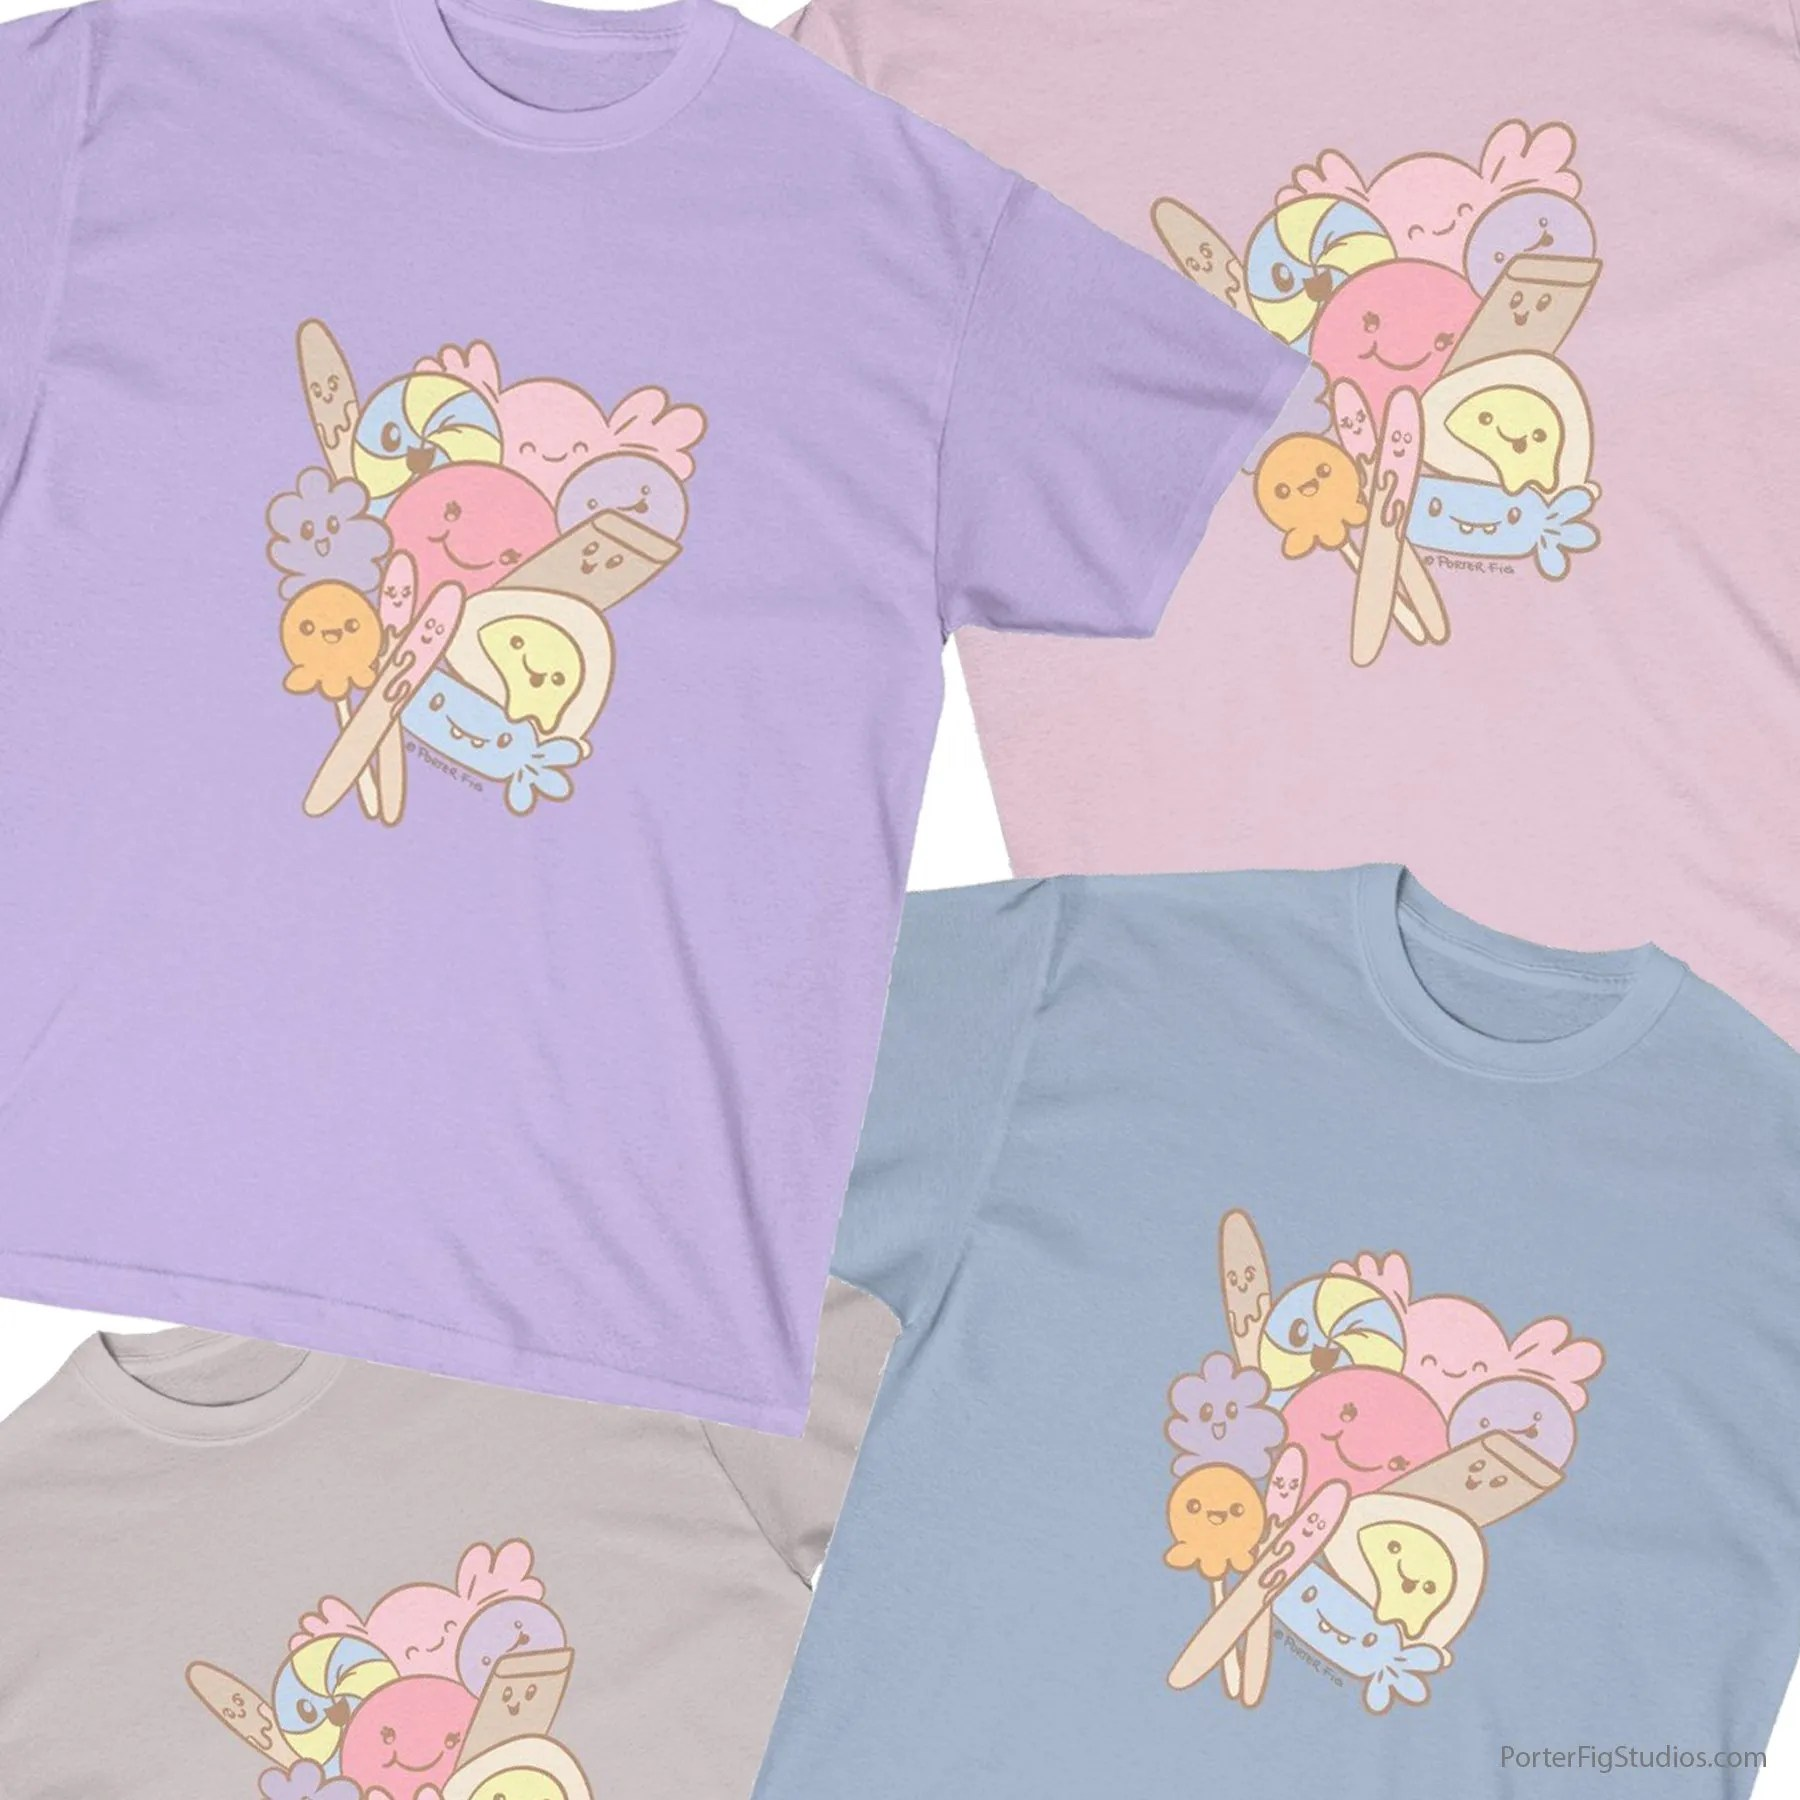 t-shirt featuring kawaii candy by porter fig studios